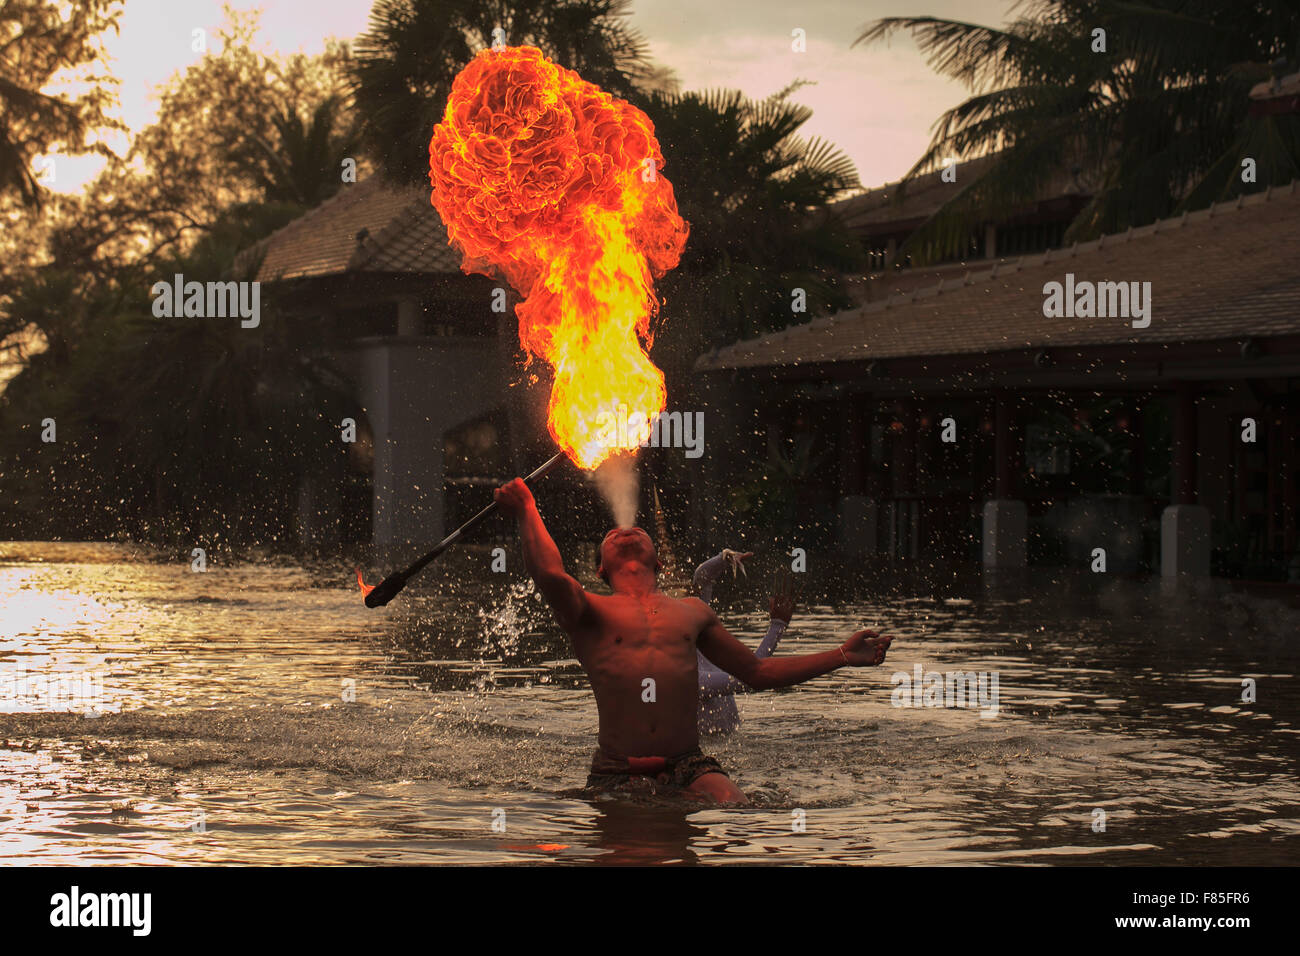 A Fire Breather in a pool in Thailand - Stock Image